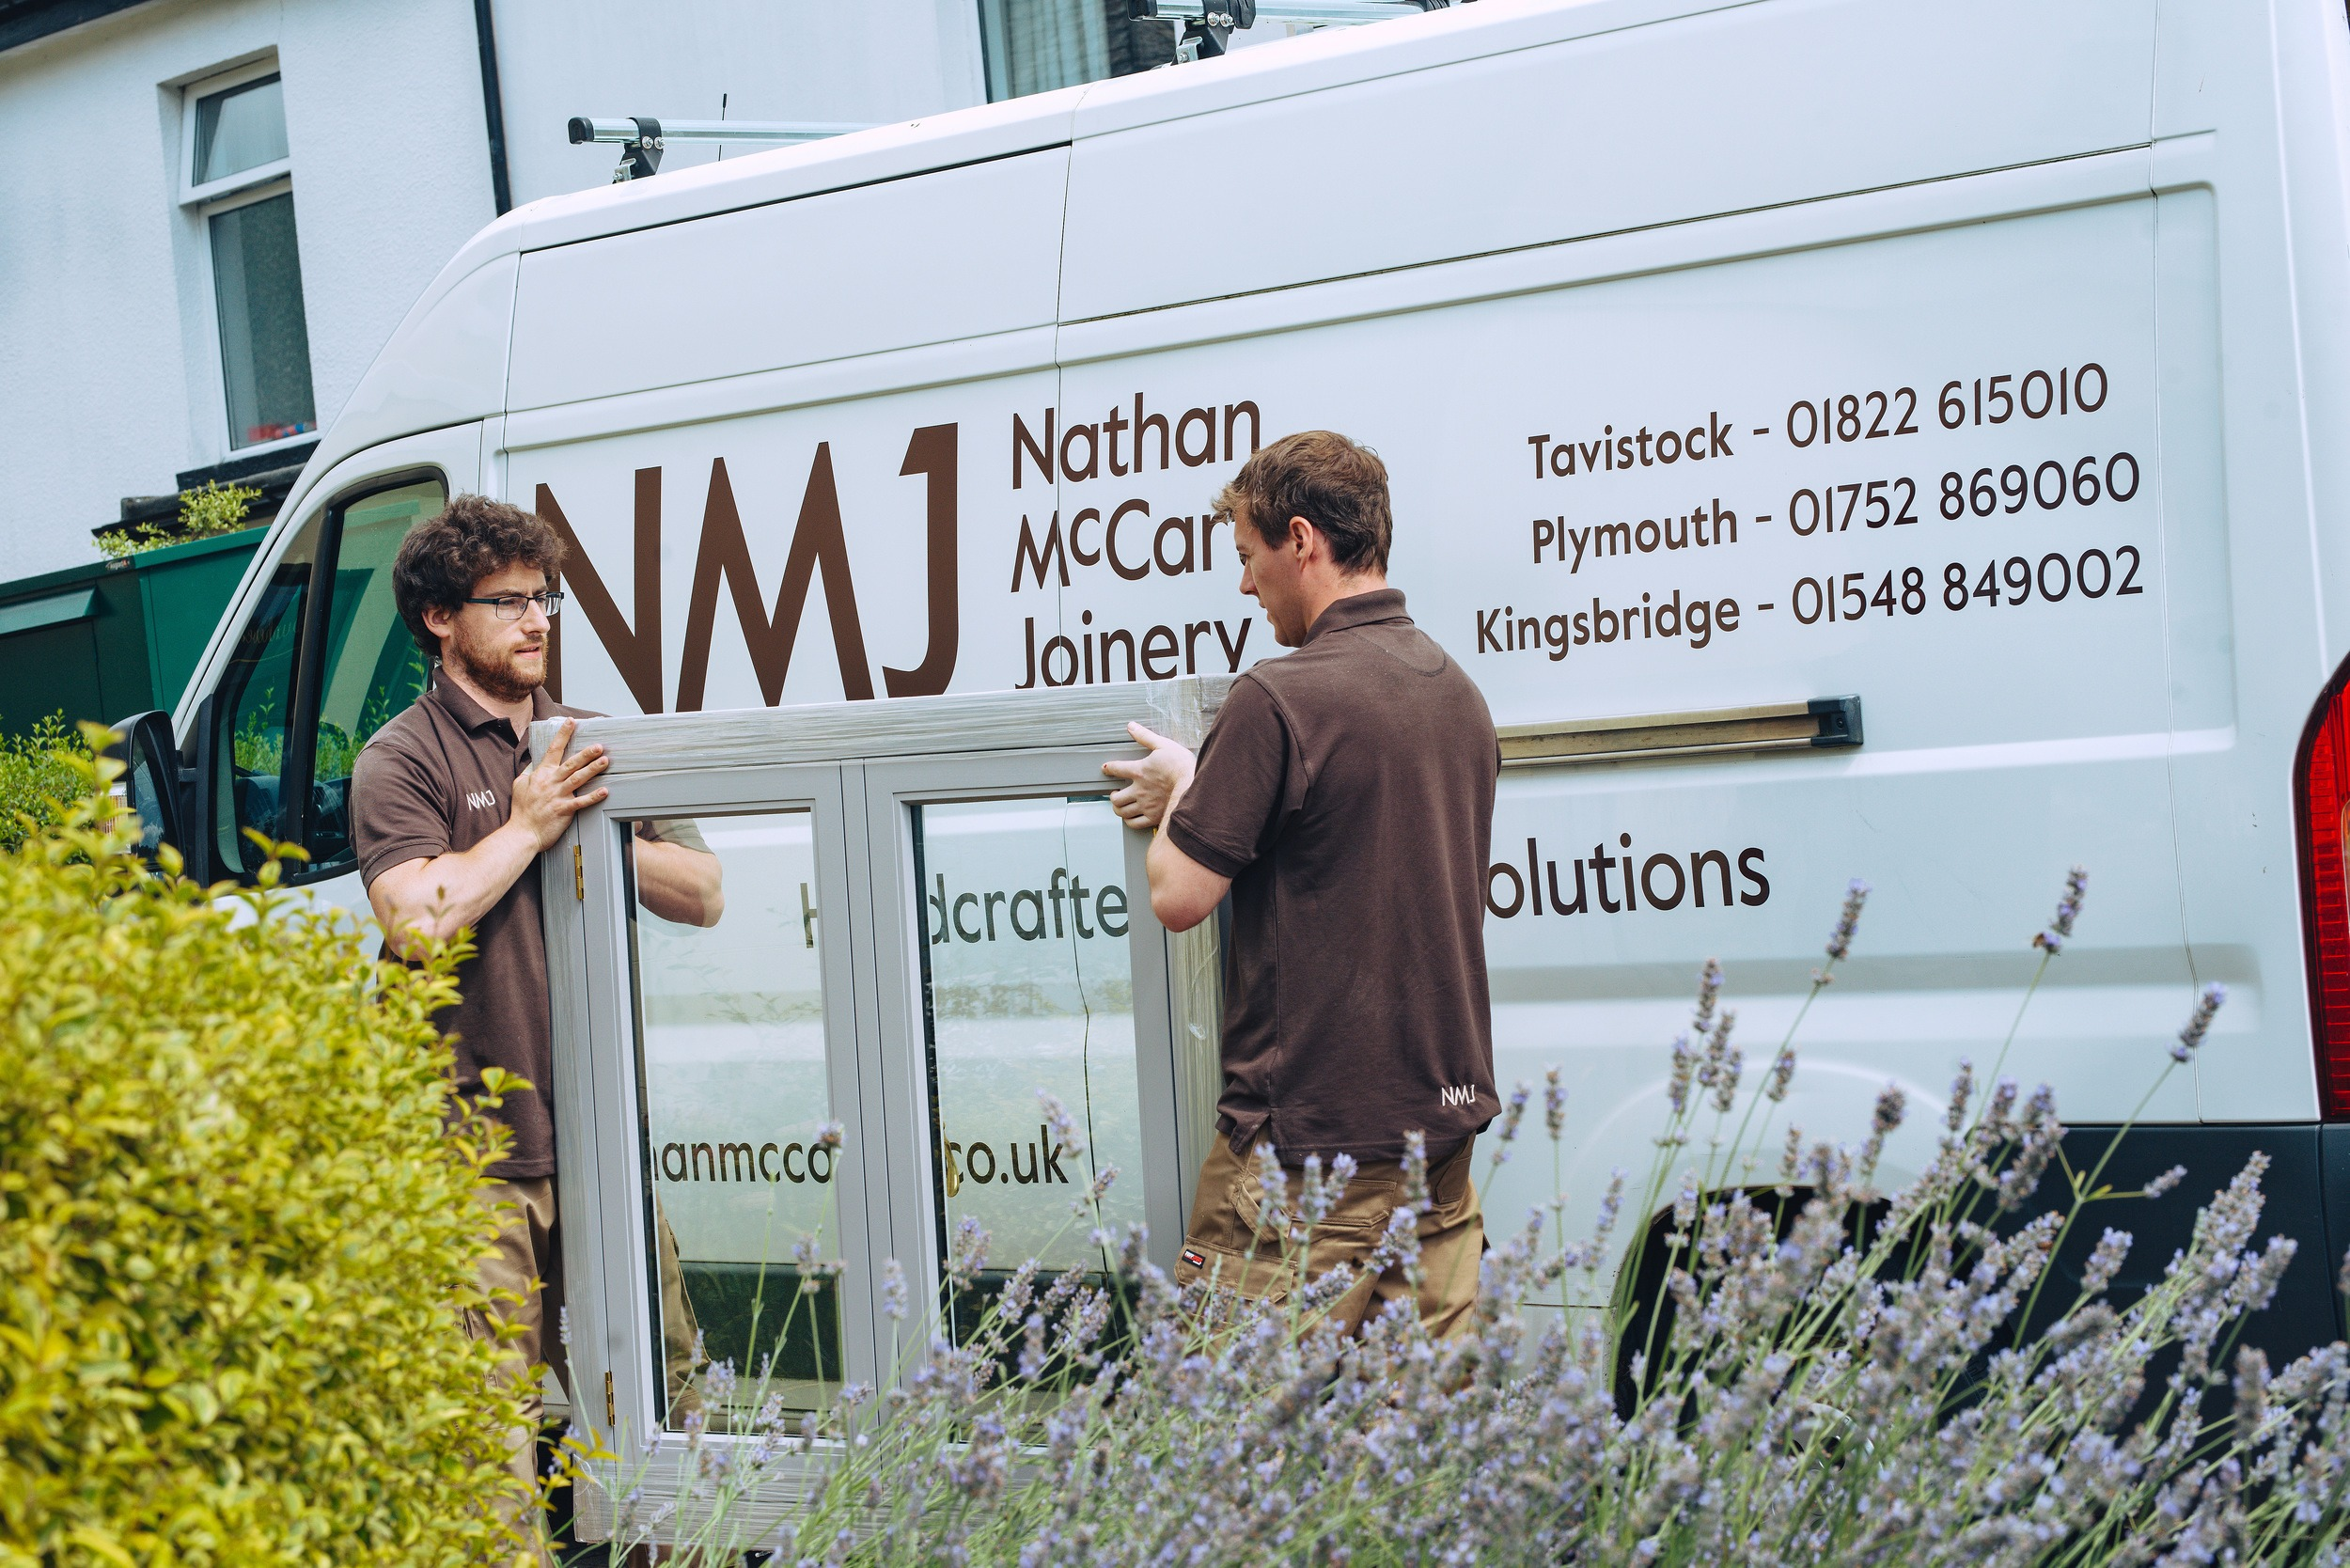 Nathan McCarter Joinery full service